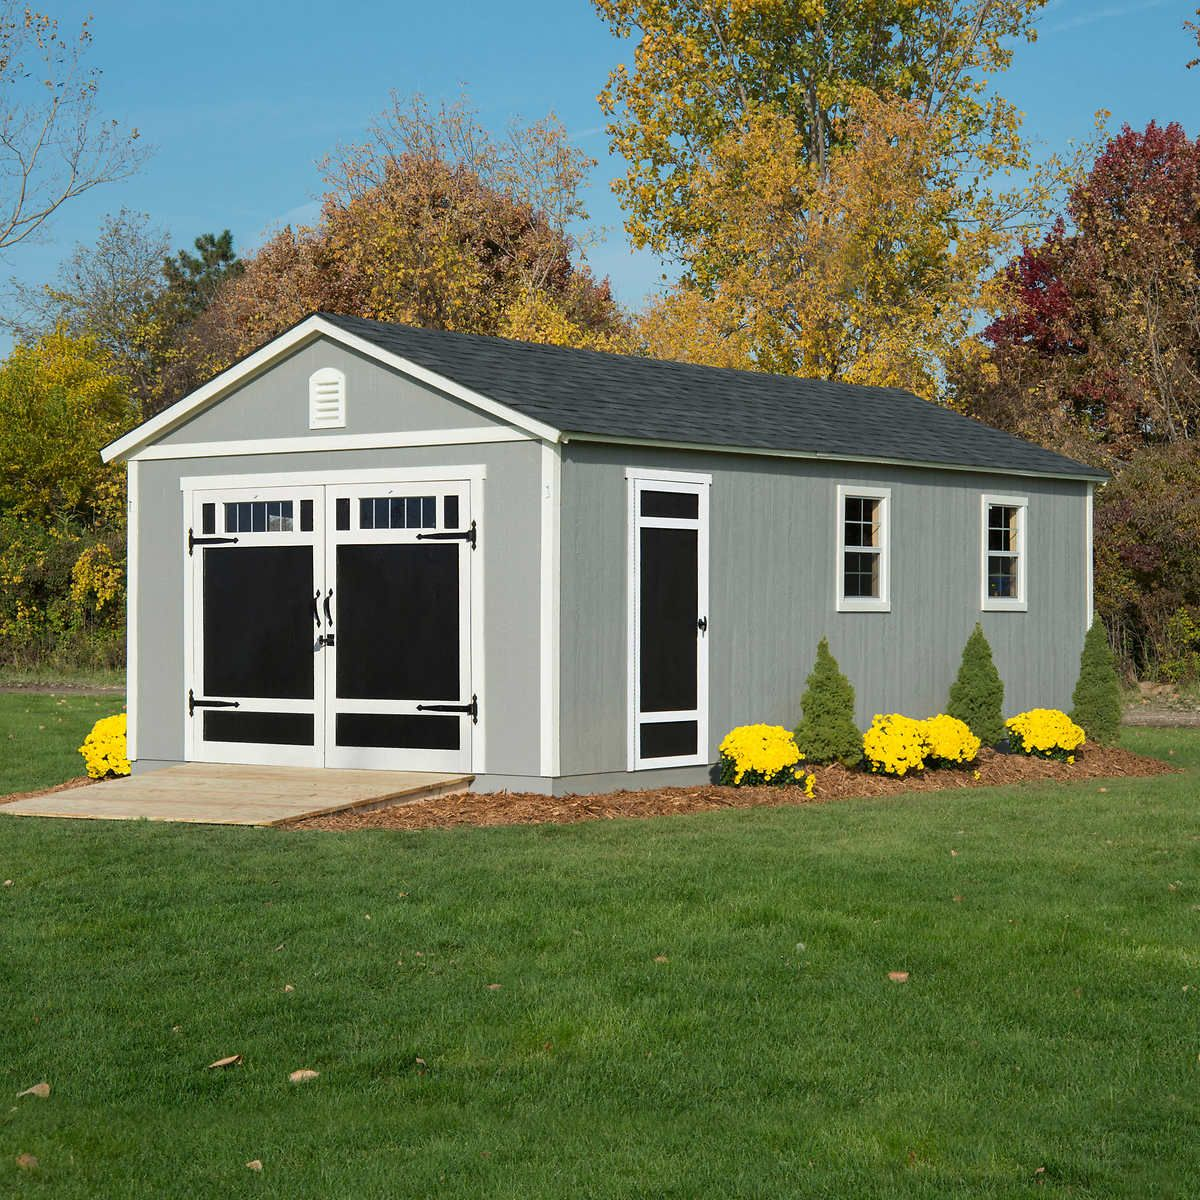 Braxton 12' X 24' Garage Shed